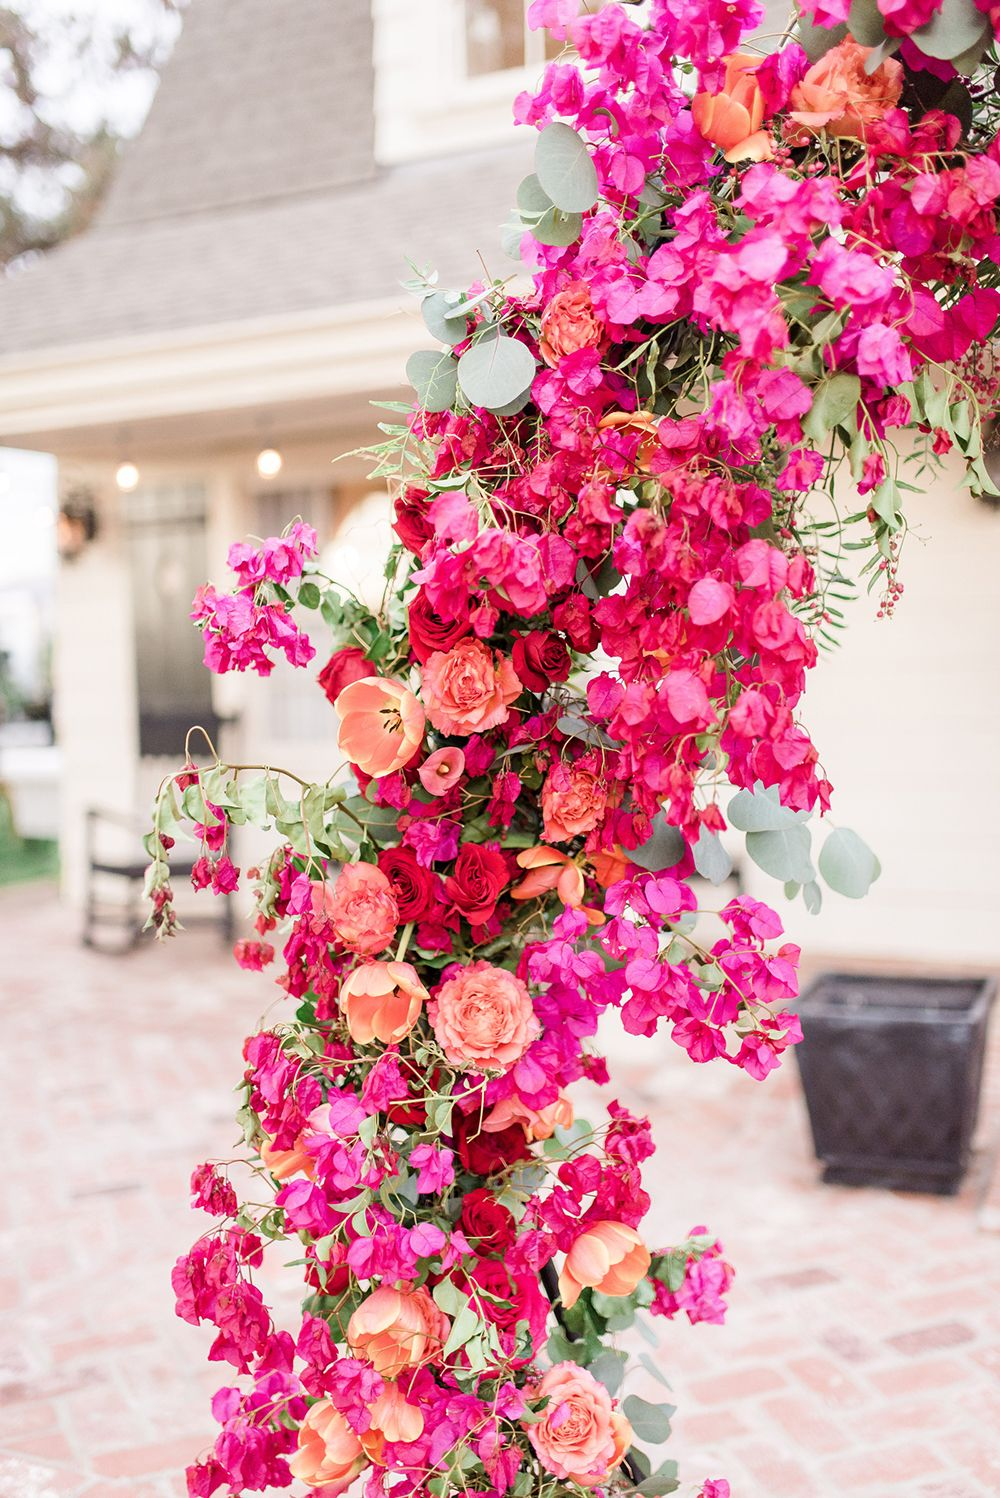 Lush Wedding Inspiration with a Bougainvillea Backdrop | wedding ...